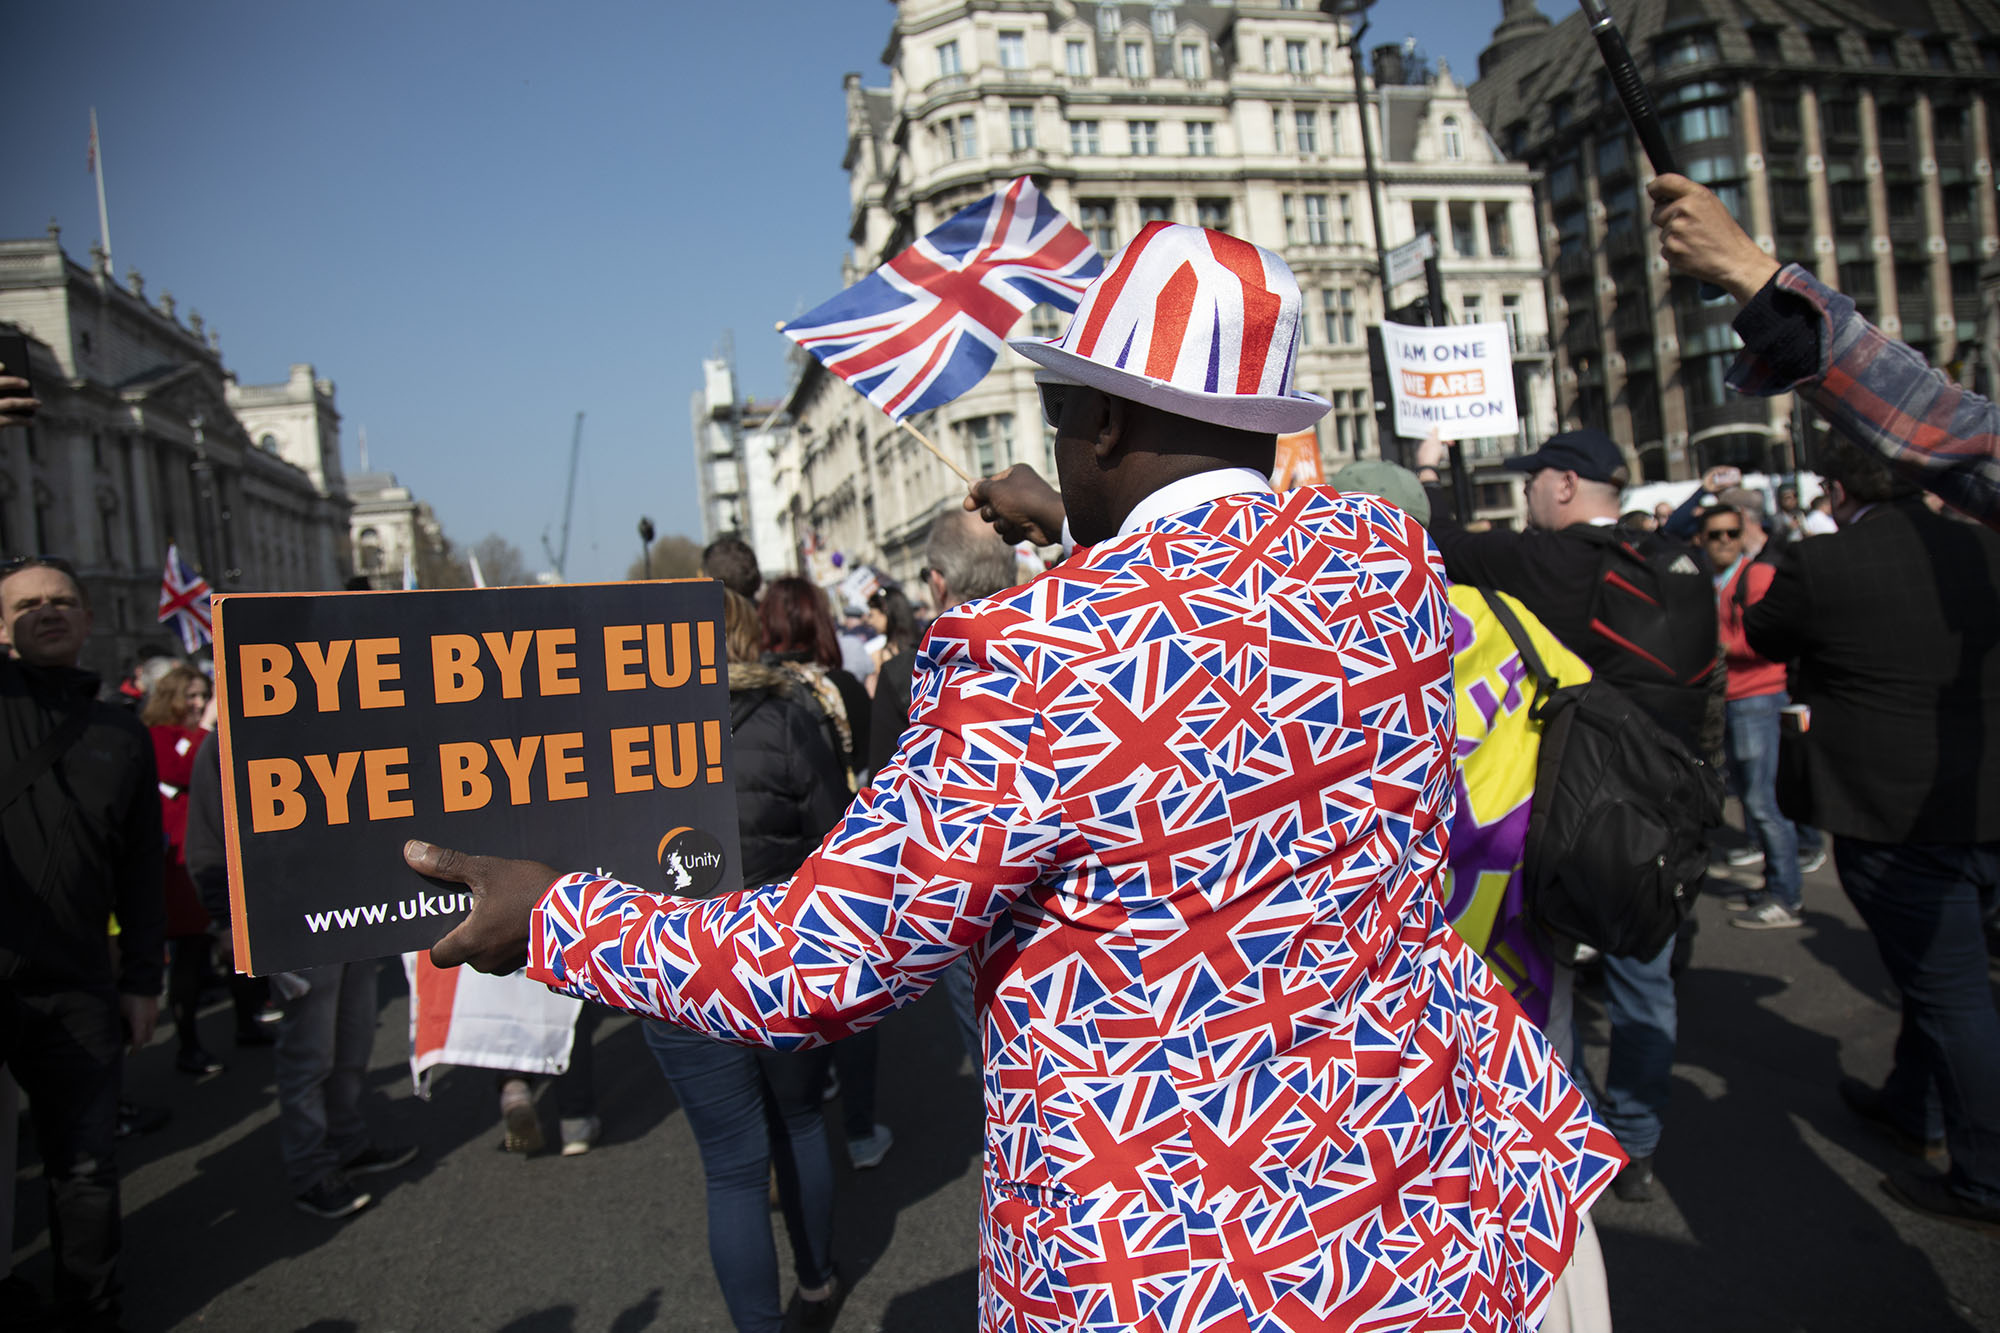 Thousands of Leave supporters gathered in Parliament Square to protest against the delay to Brexit, on the day the UK had been due to leave the EU on 29th March 2019.